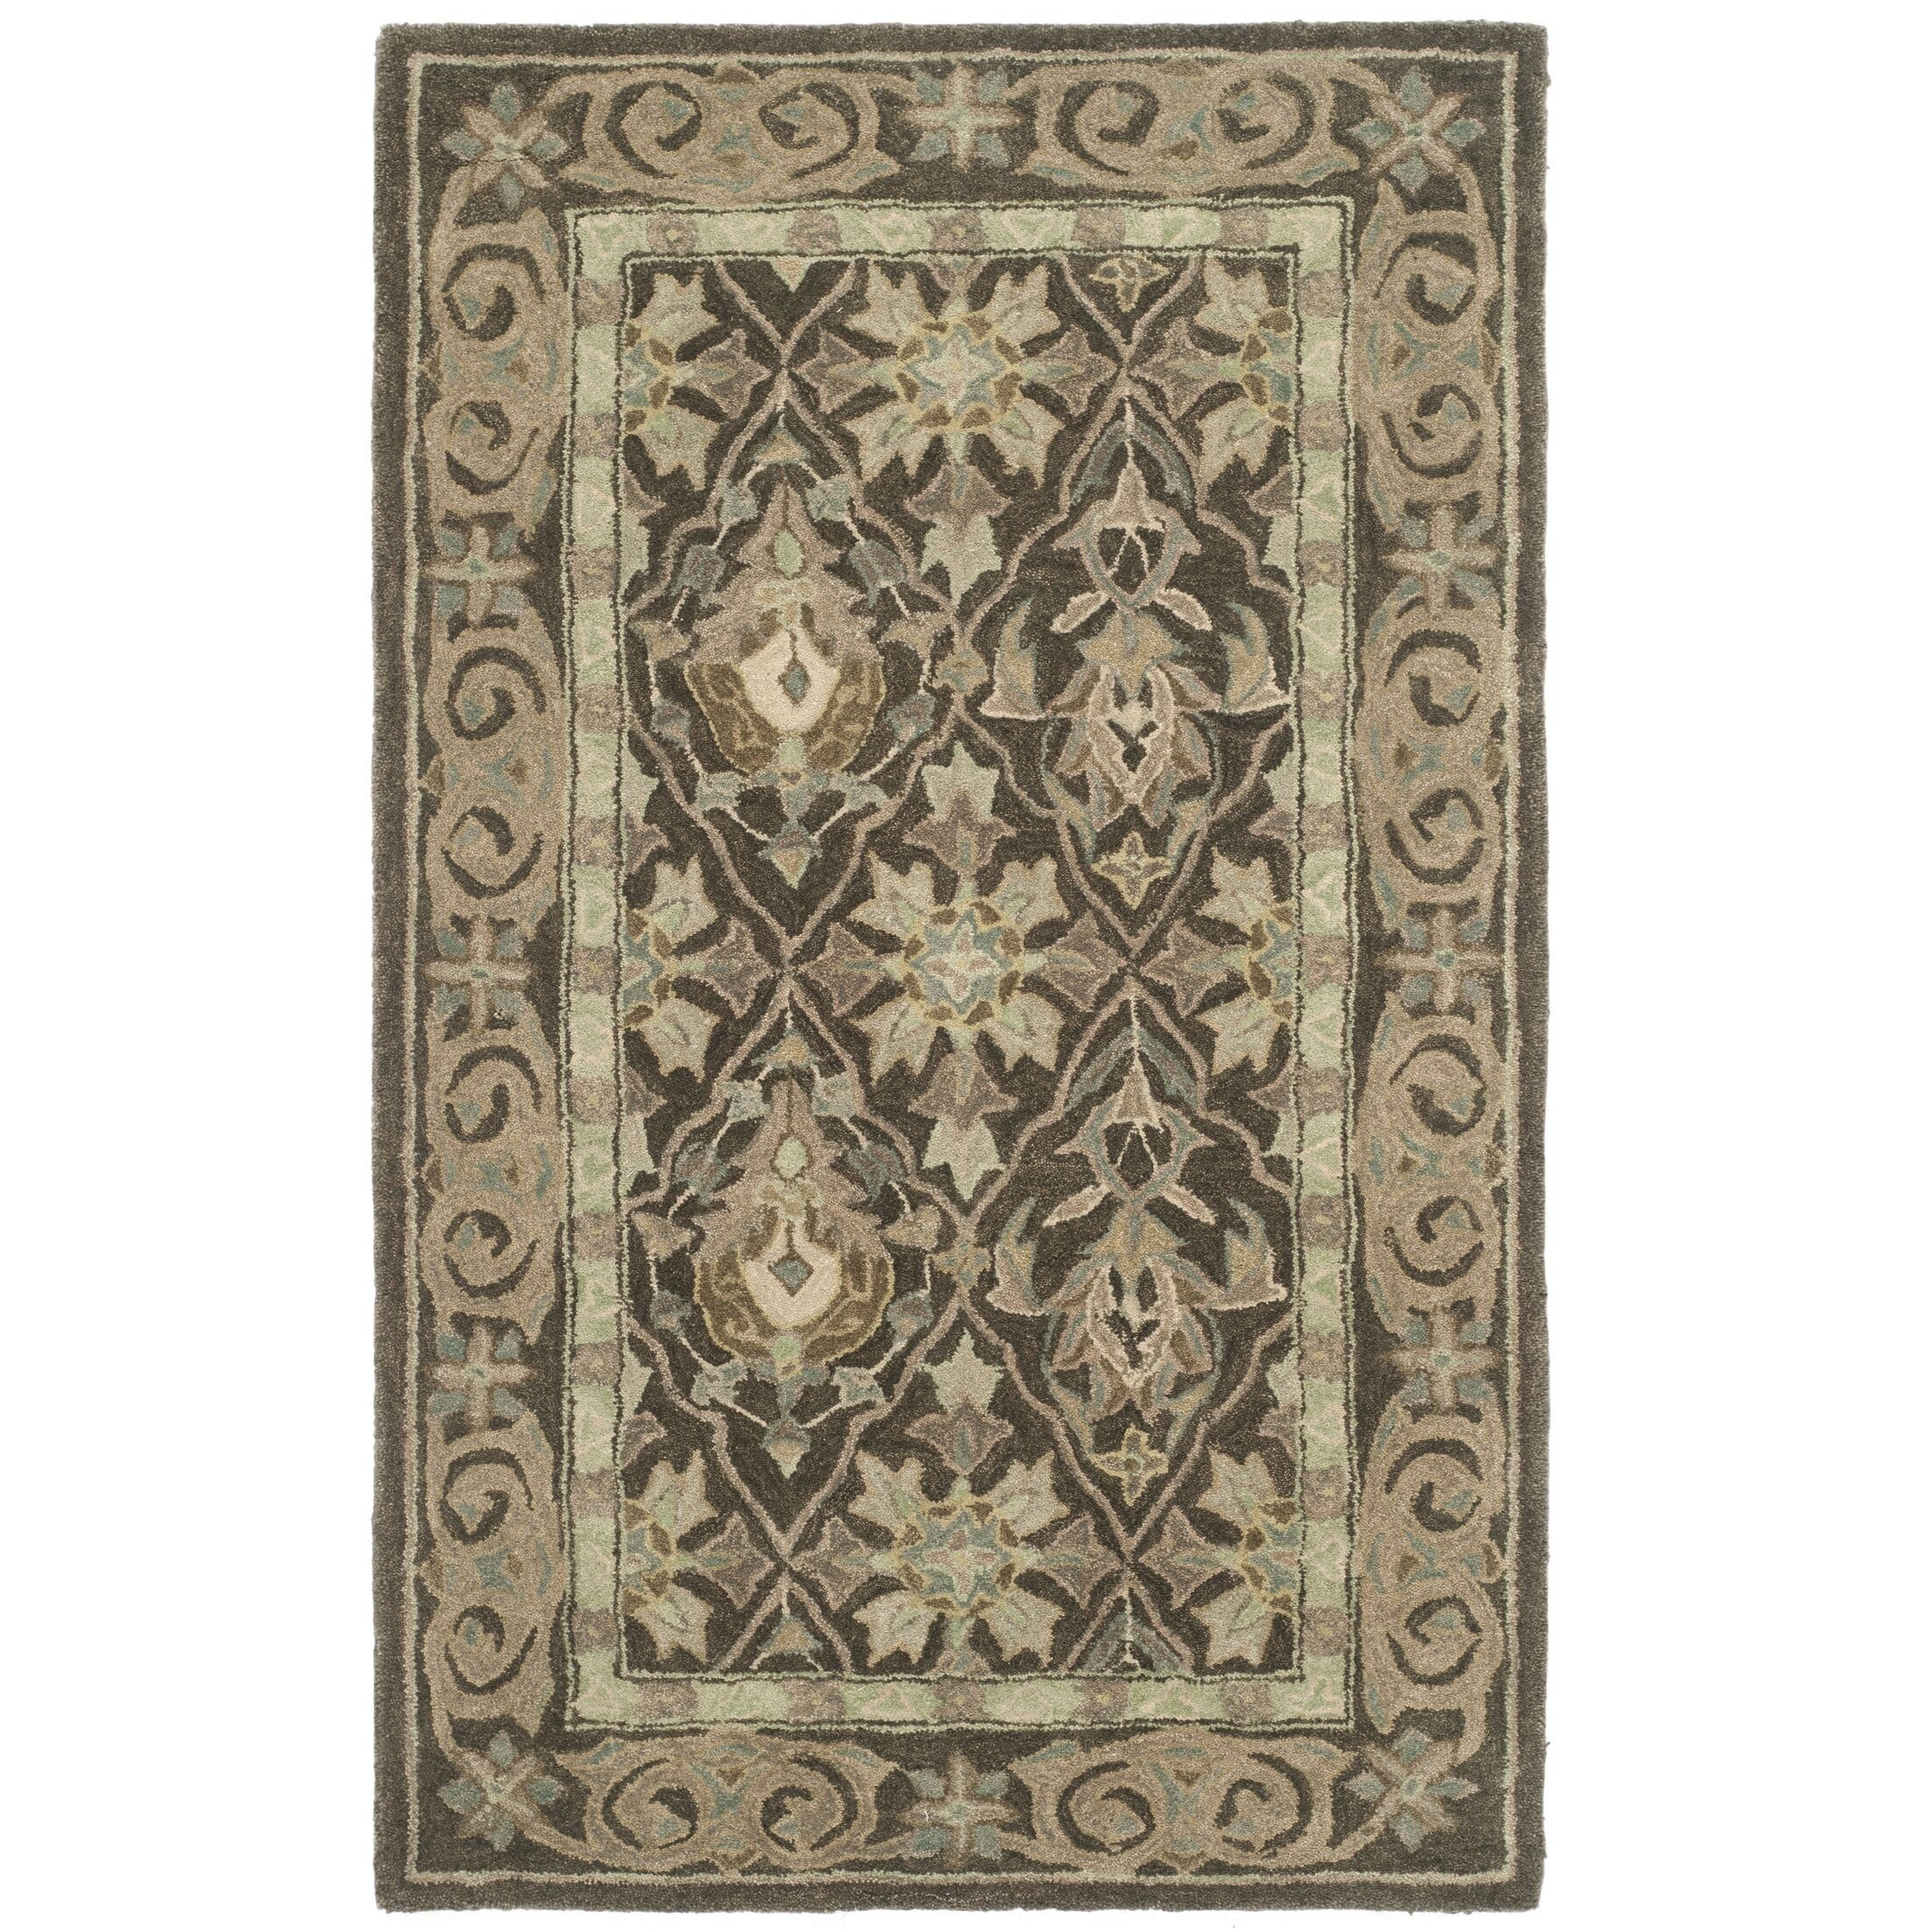 Anatolia Brown/Beige Area Rug Rug Size: Rectangle 4' x 6'